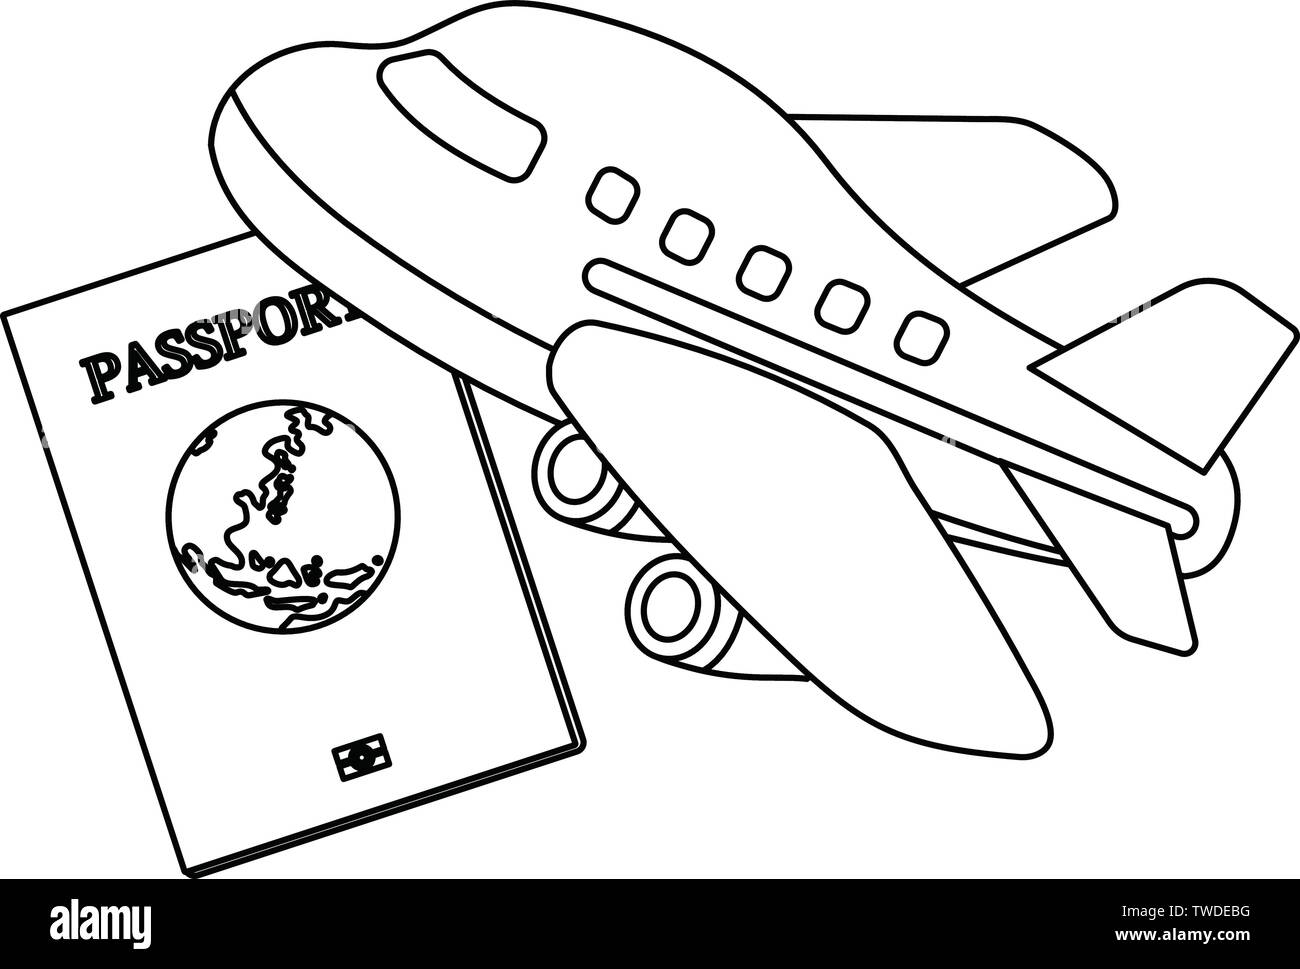 This is the Illustration of a passport. Stock Vector